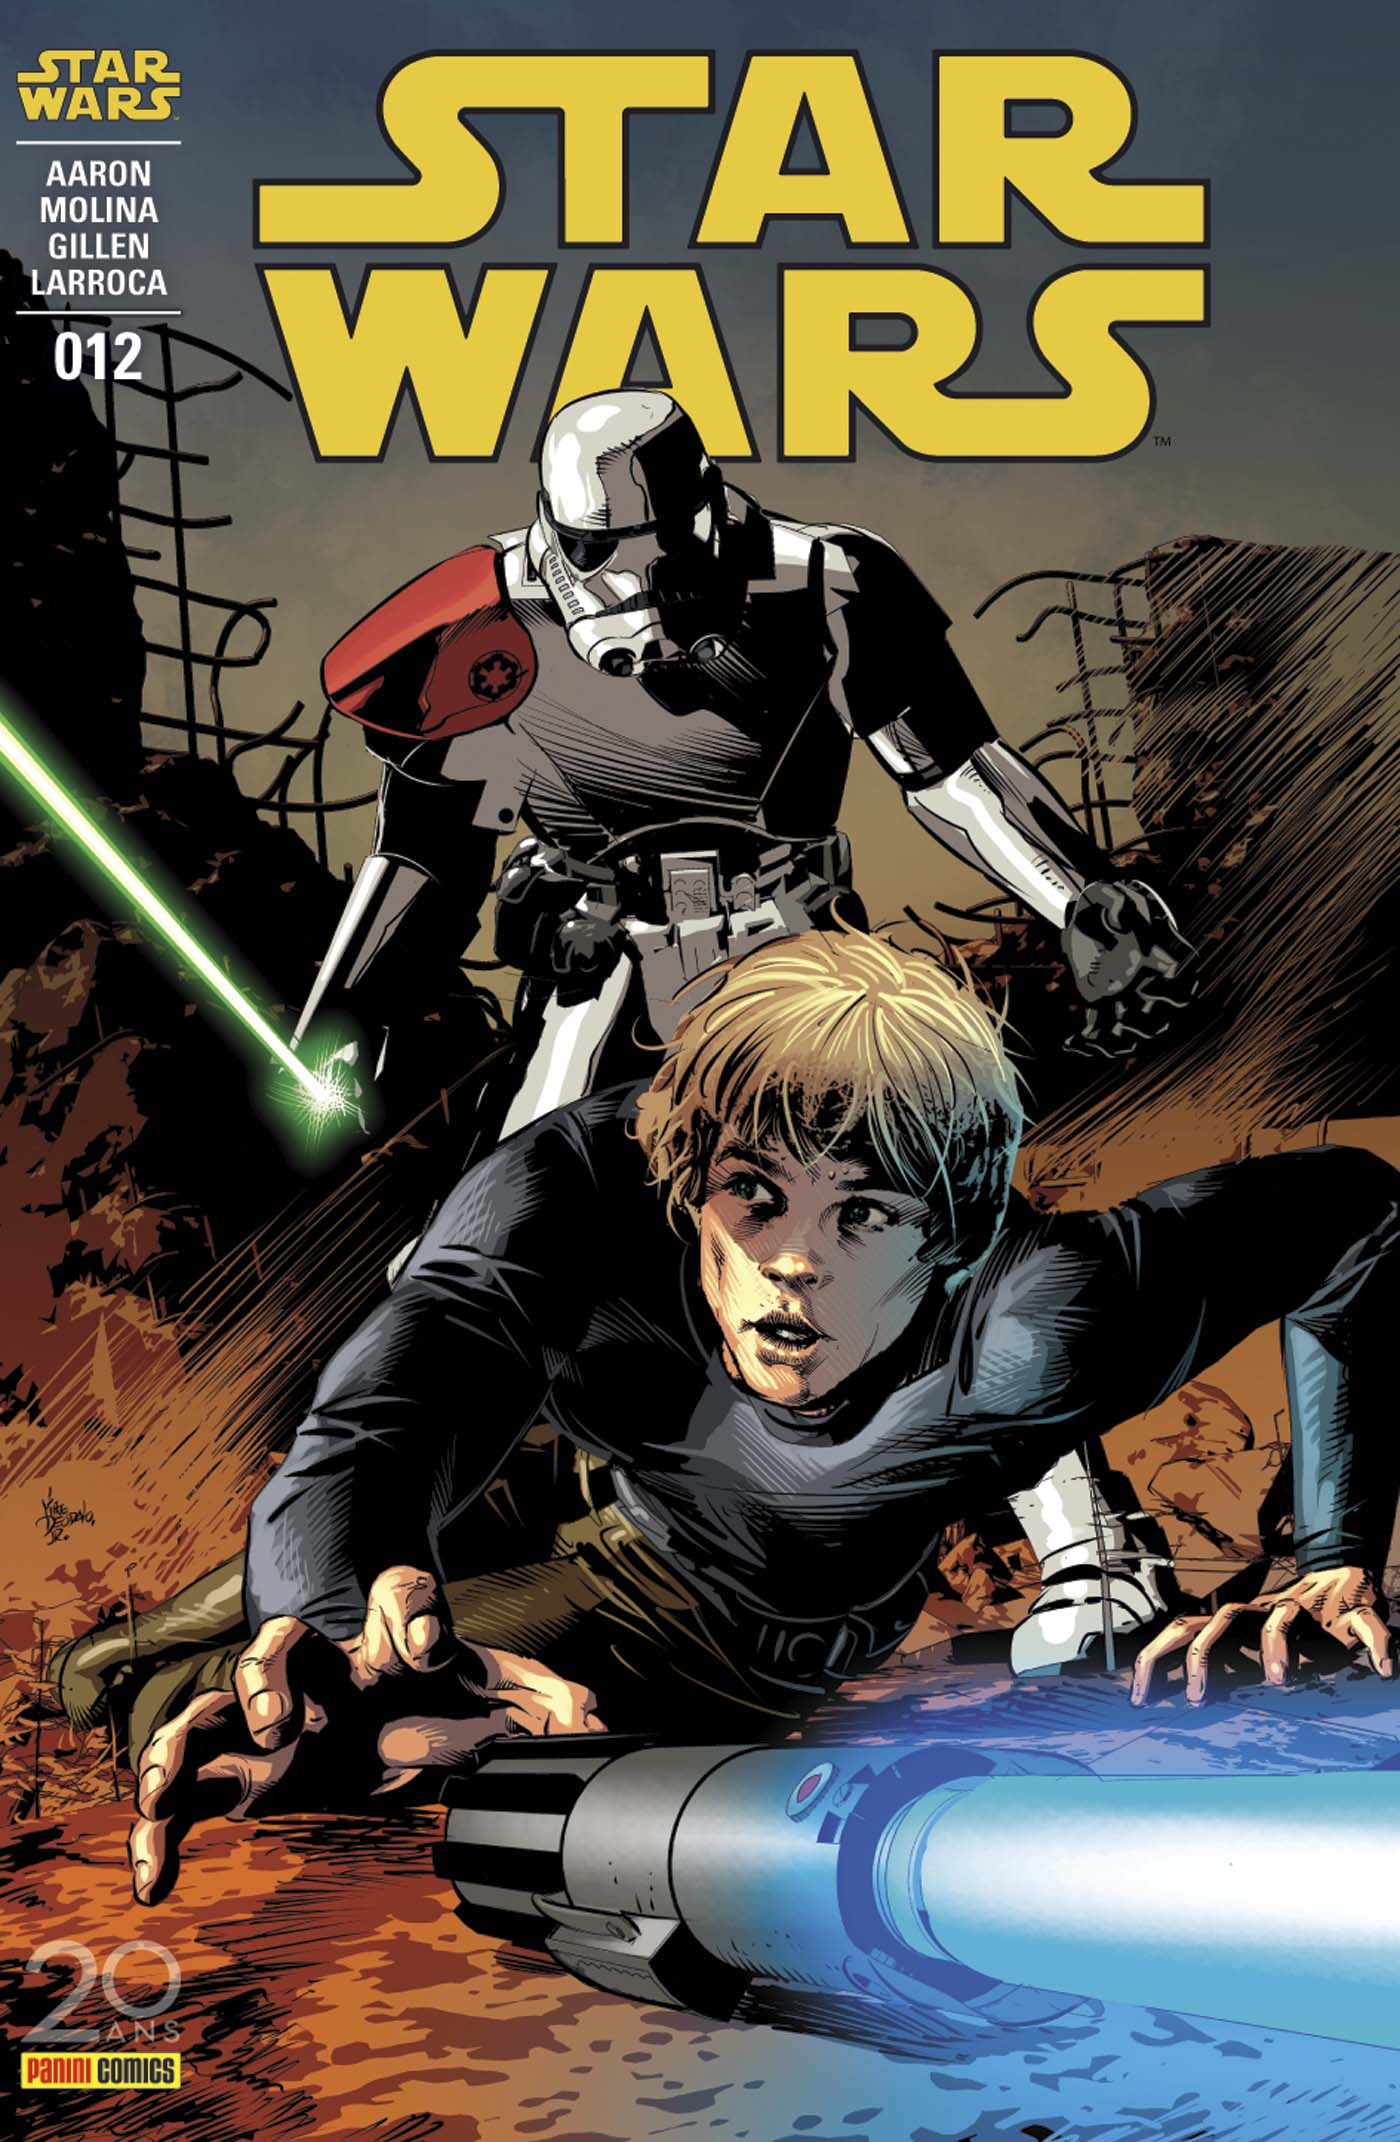 Star Wars Comics 12 - Couverture A